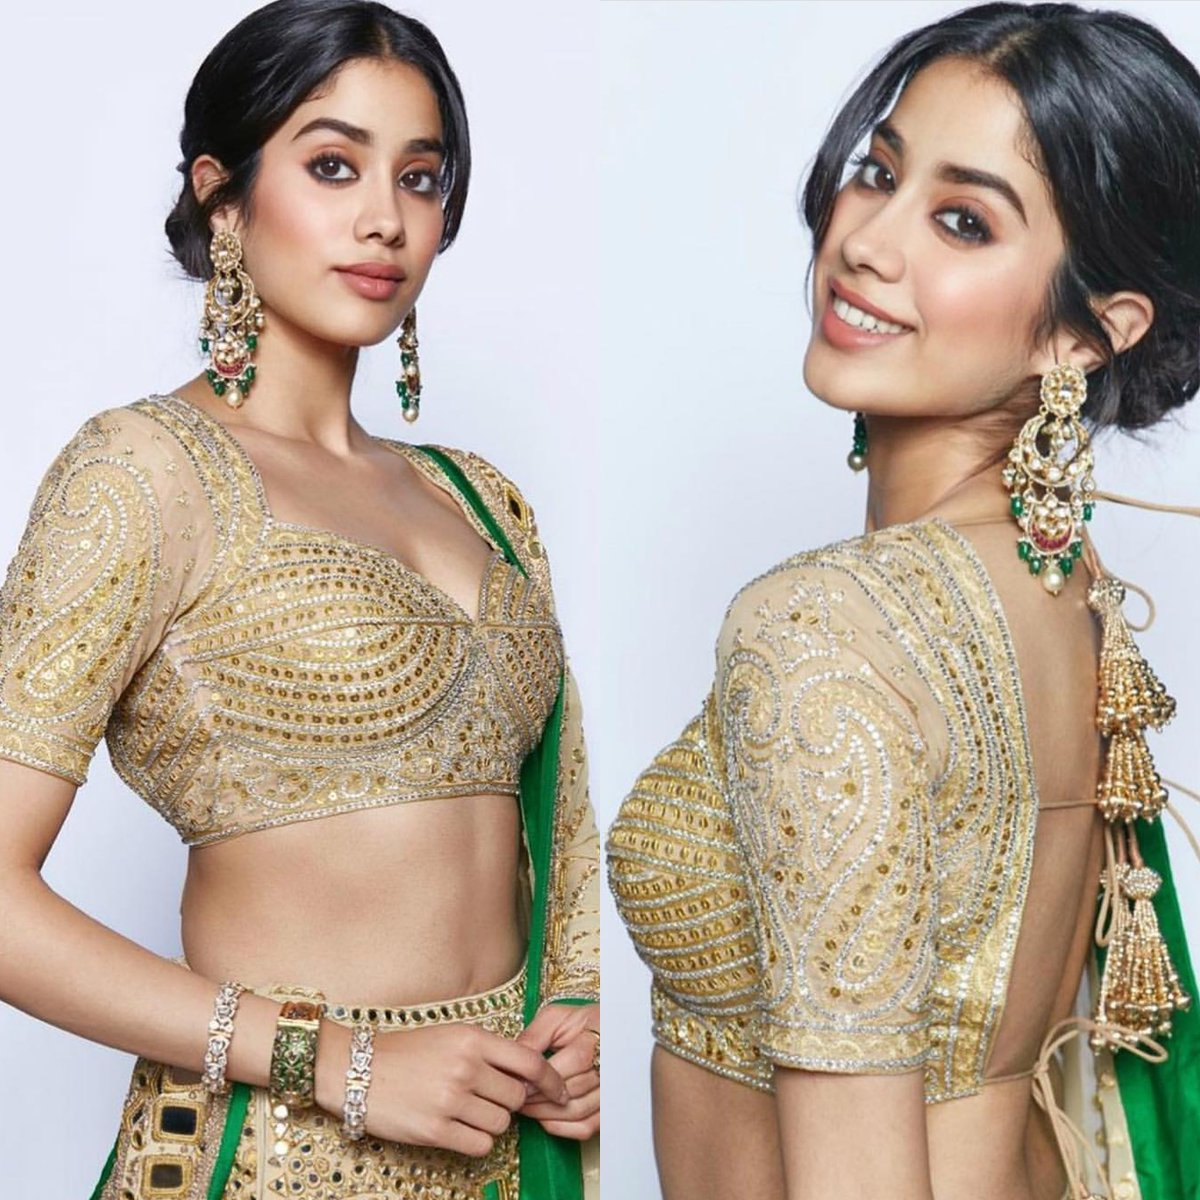 Janhvi Kapoor welcomes this leading Tamil heroine to Bollywood!